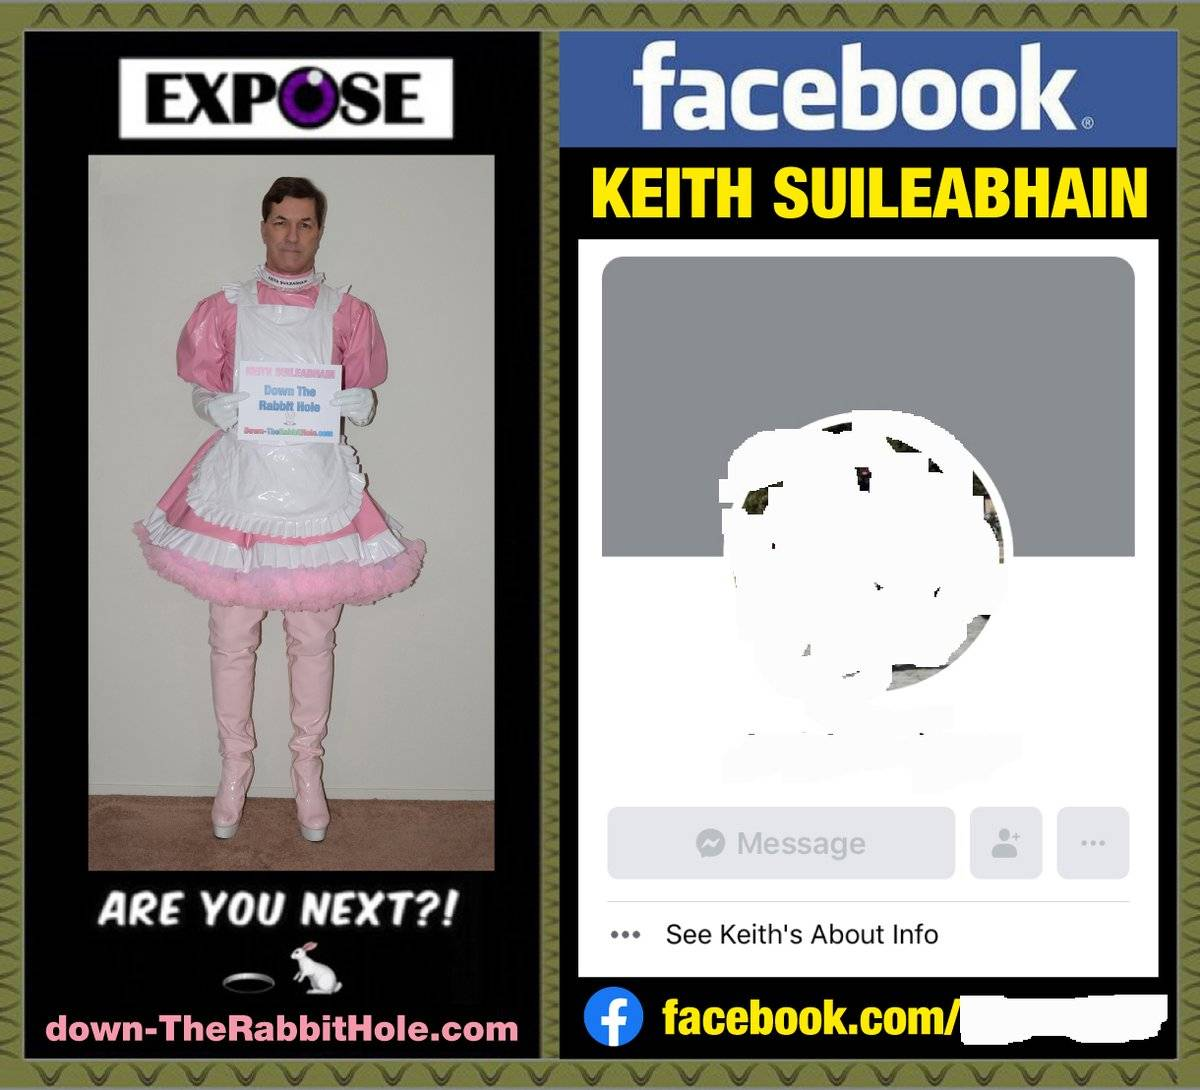 KEITH SUILEABHAIN IS NOW FULLY OUTED